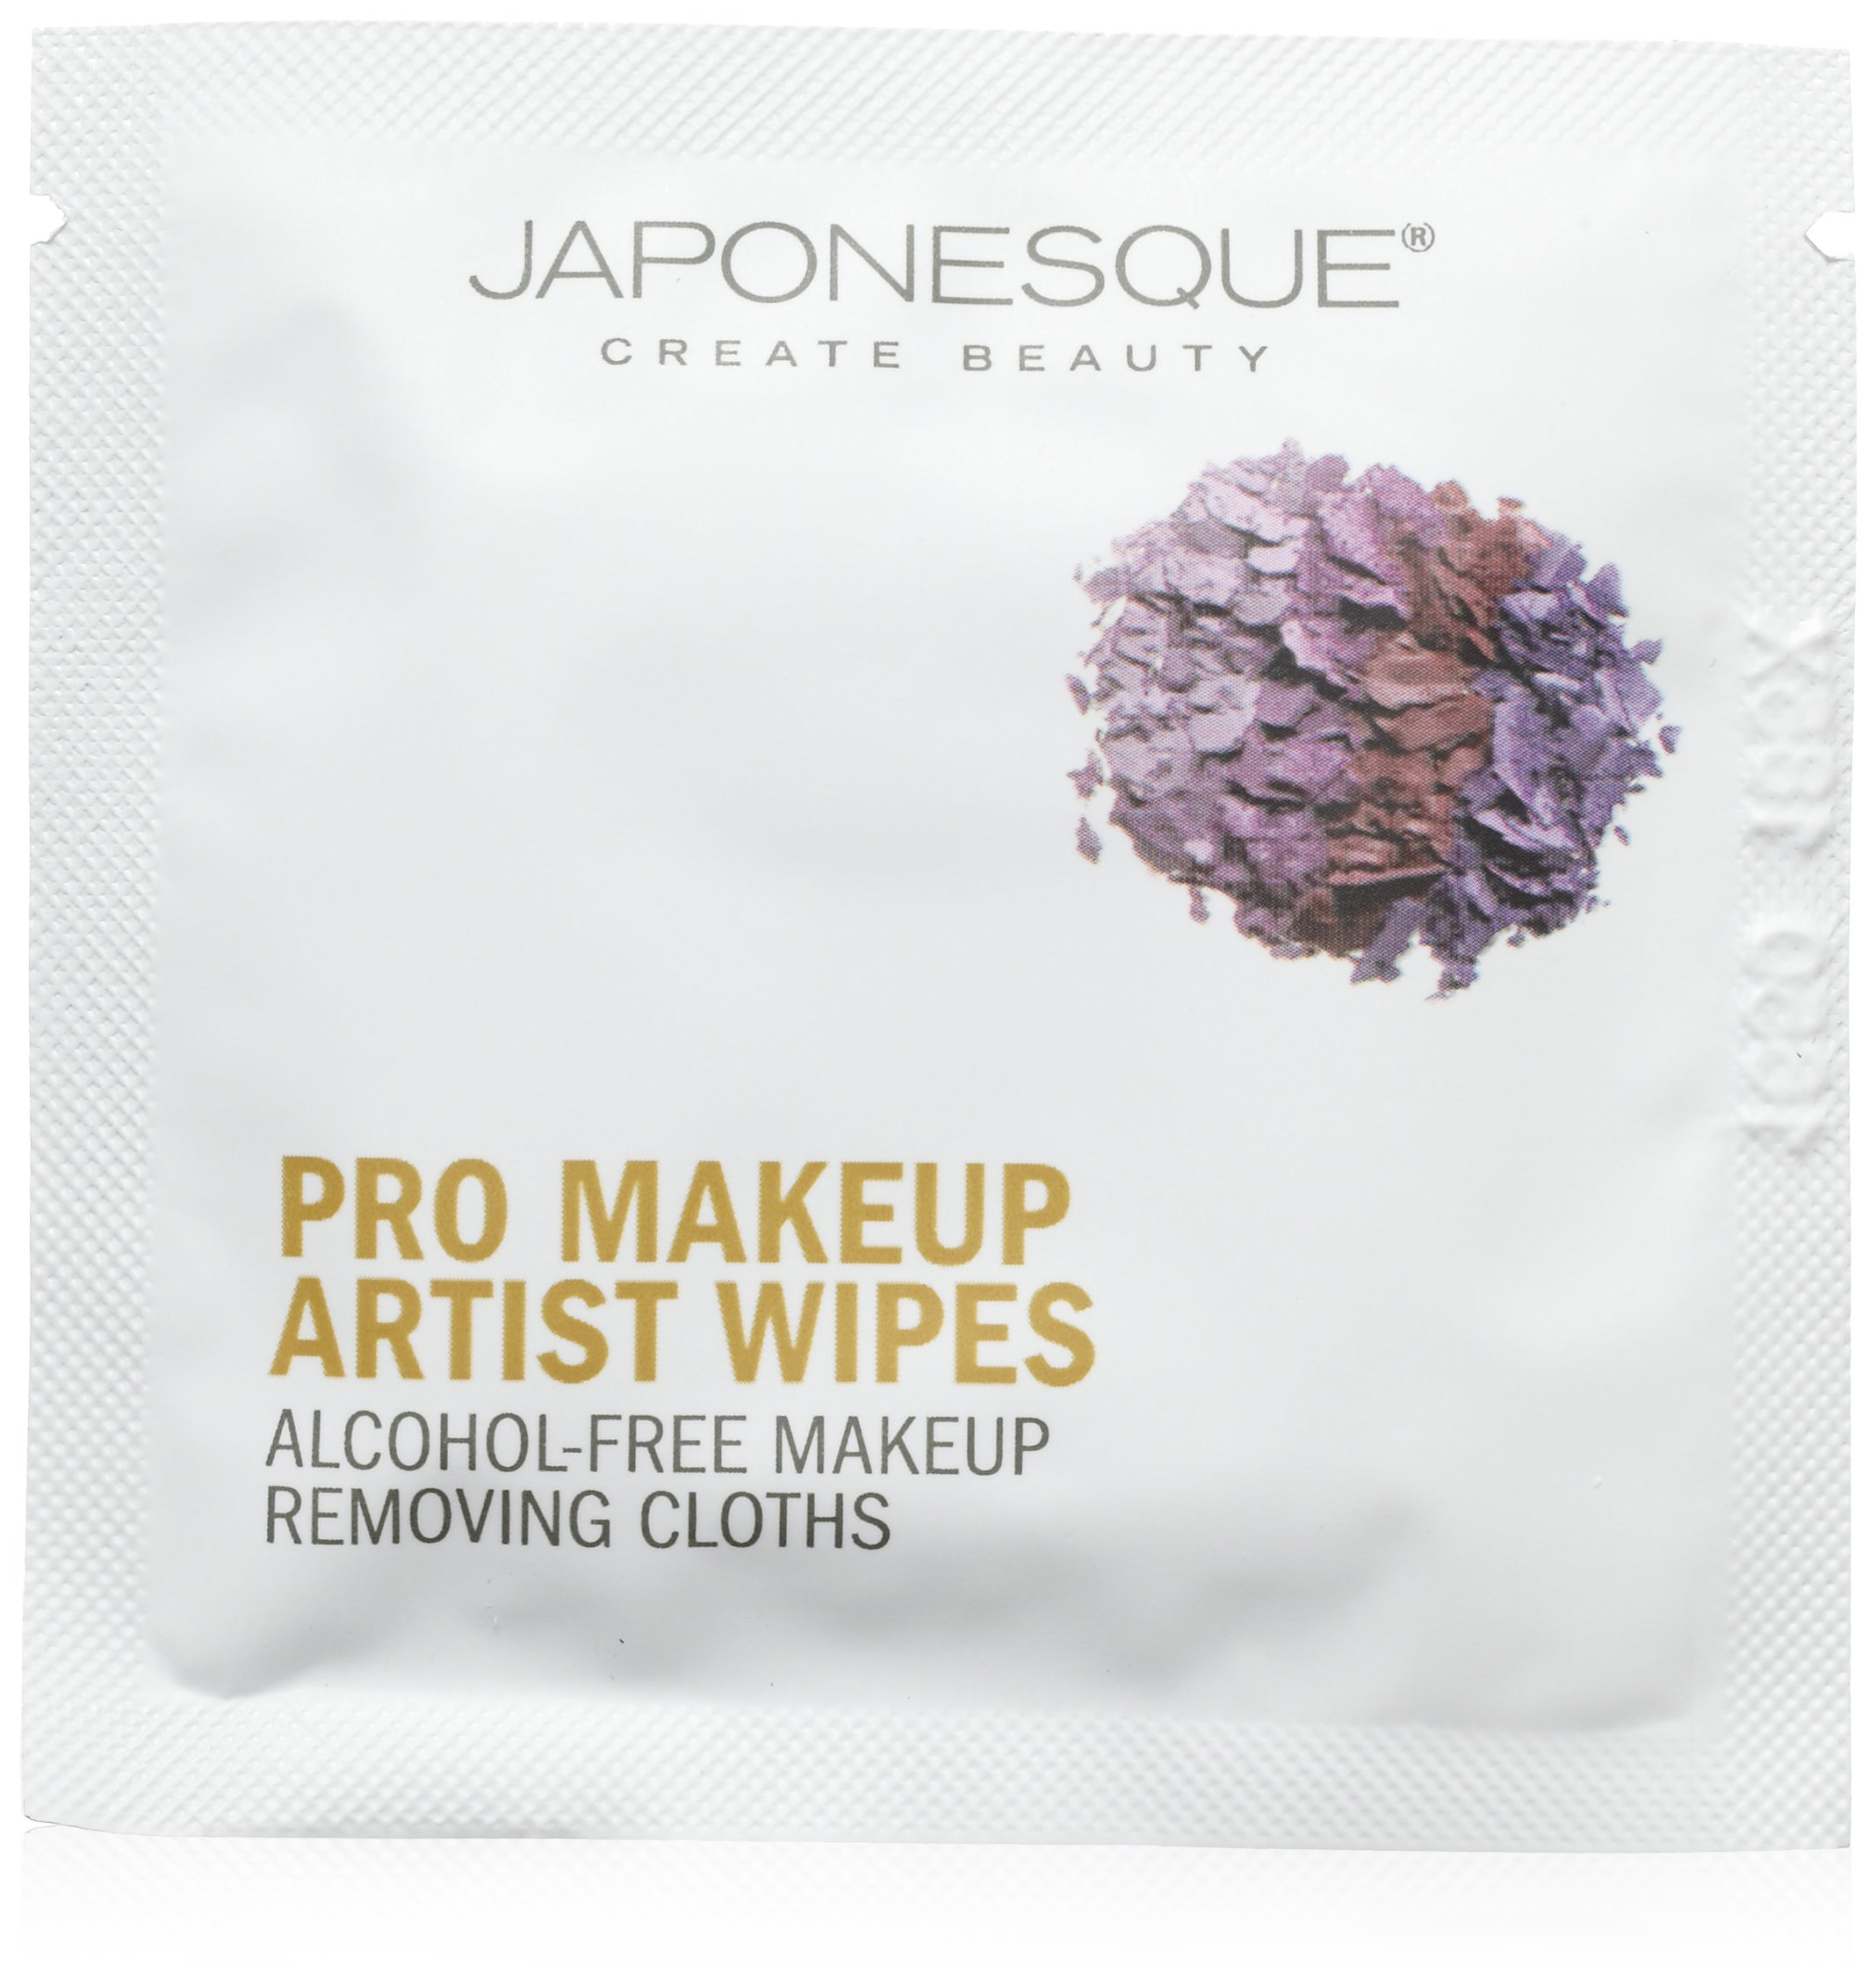 JAPONESQUE Pro Makeup Artist Wipes, 20 Count